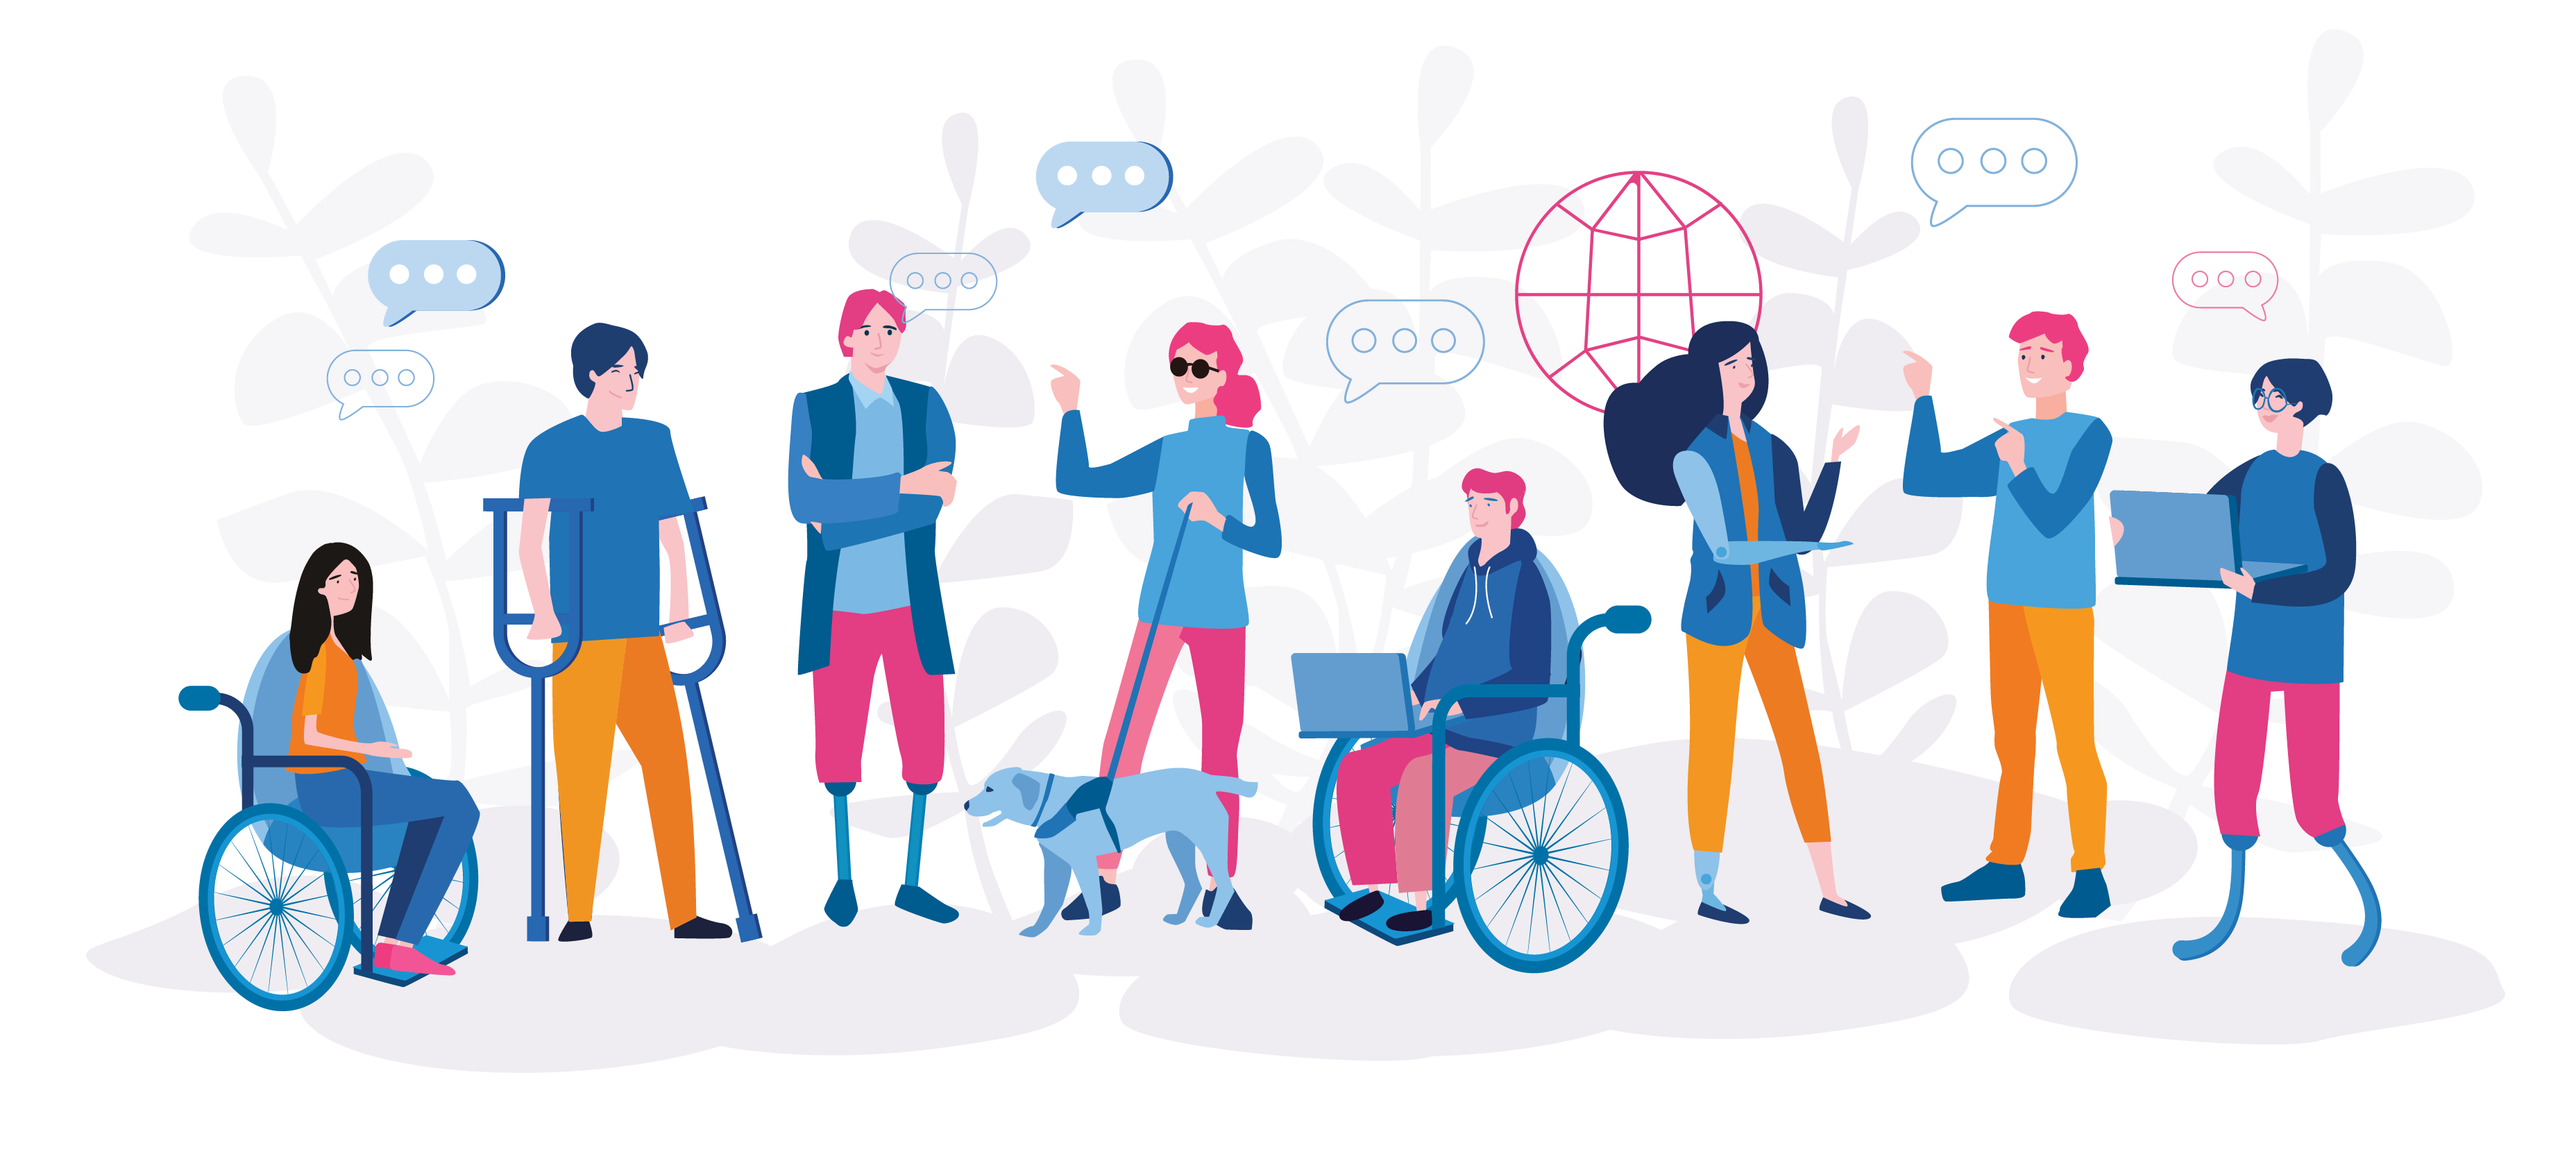 Inclusive Design and Accessible Architecture: Why They Are Pivotal Today